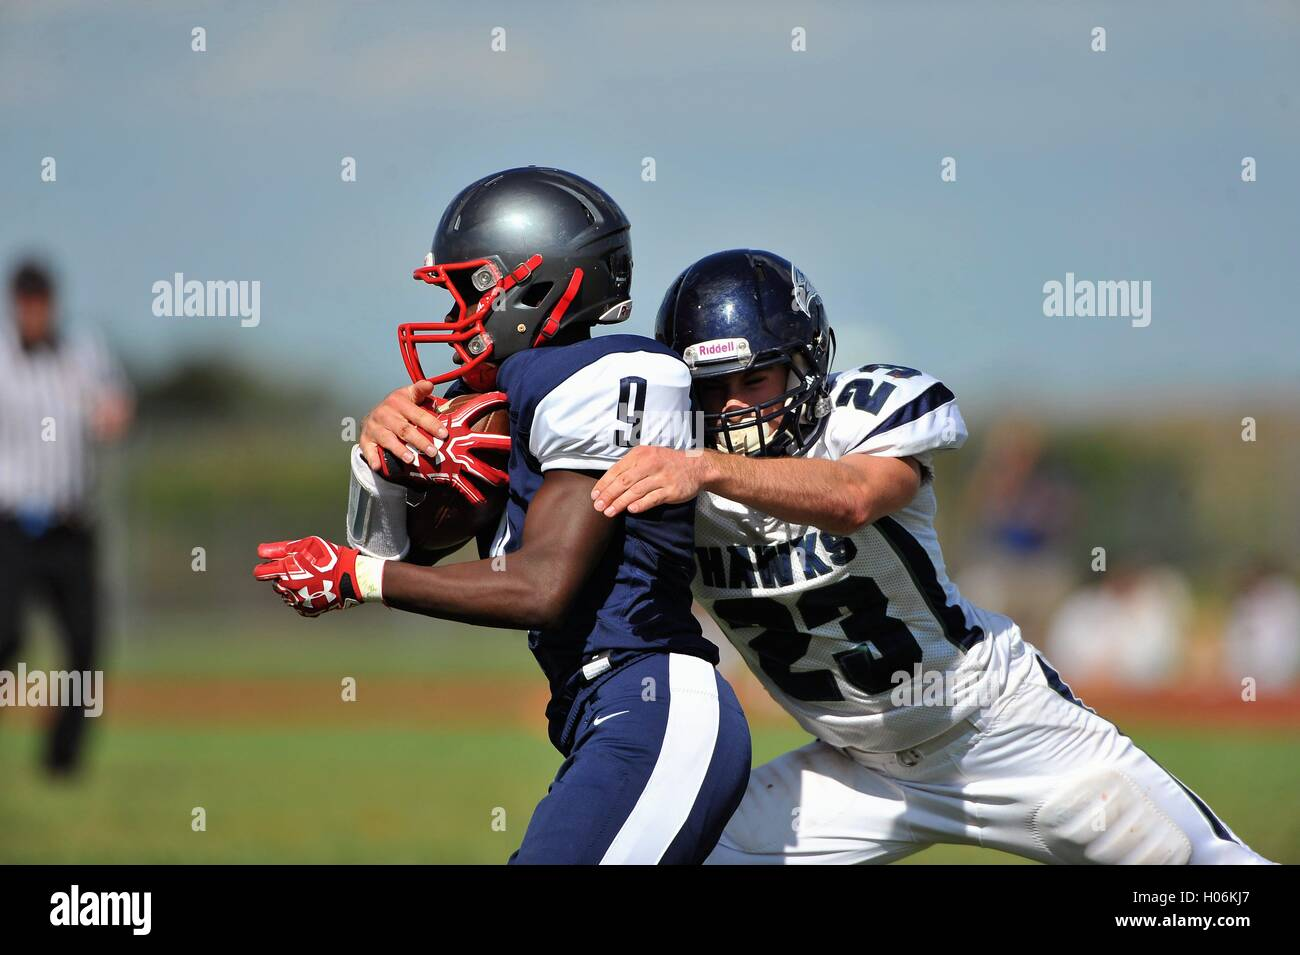 Defensive back wrapping up an opposing running back in making a solo tackle during a high school football game. - Stock Image